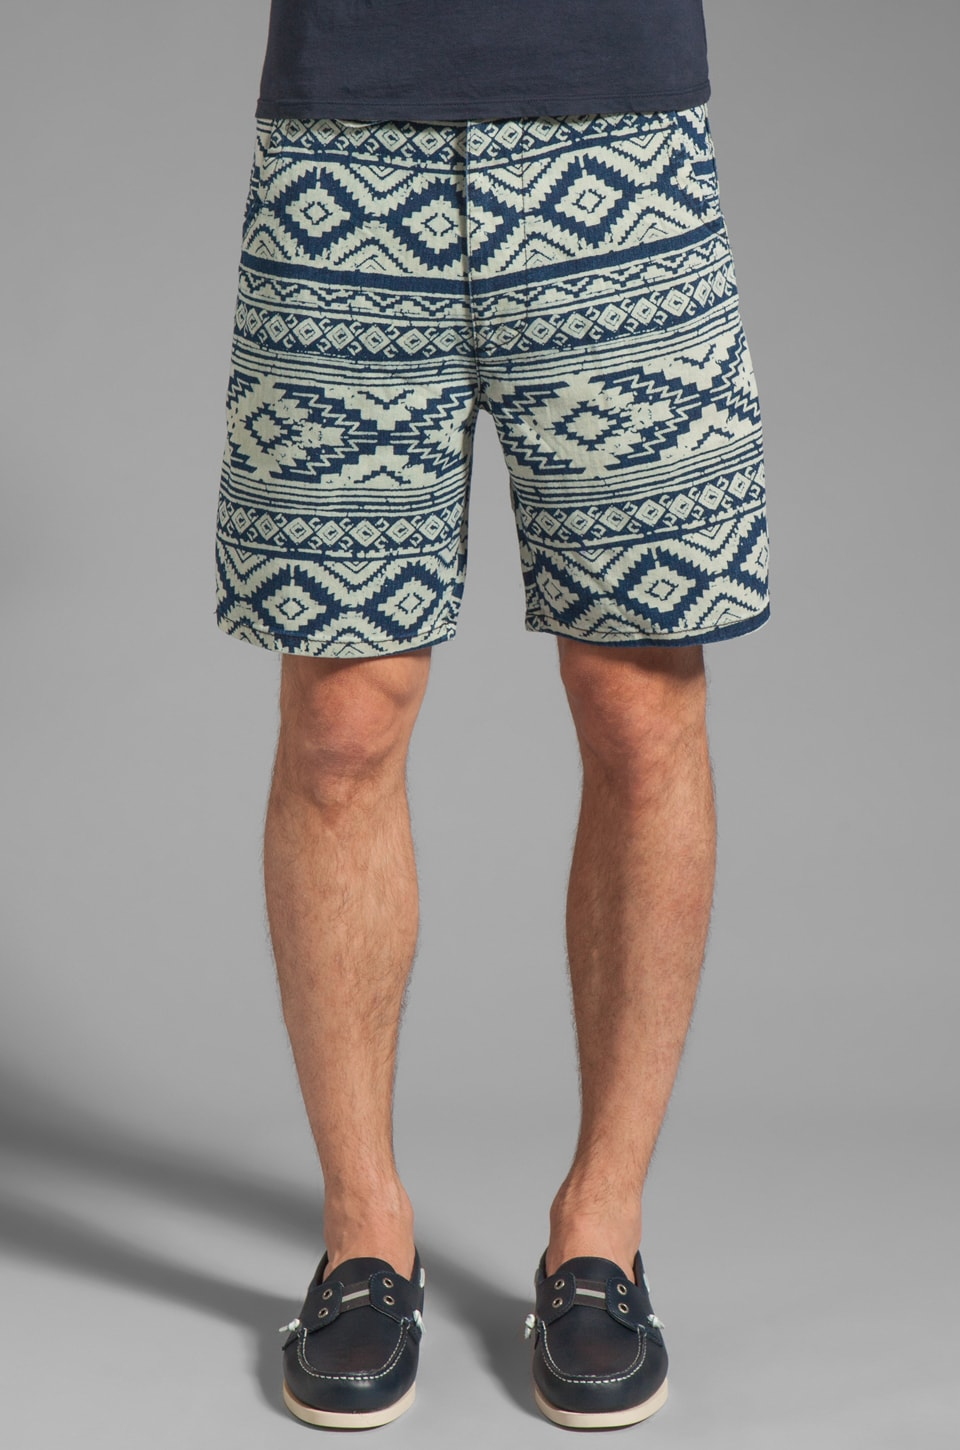 Cohesive & co. Westerly Native Print Short in Navy